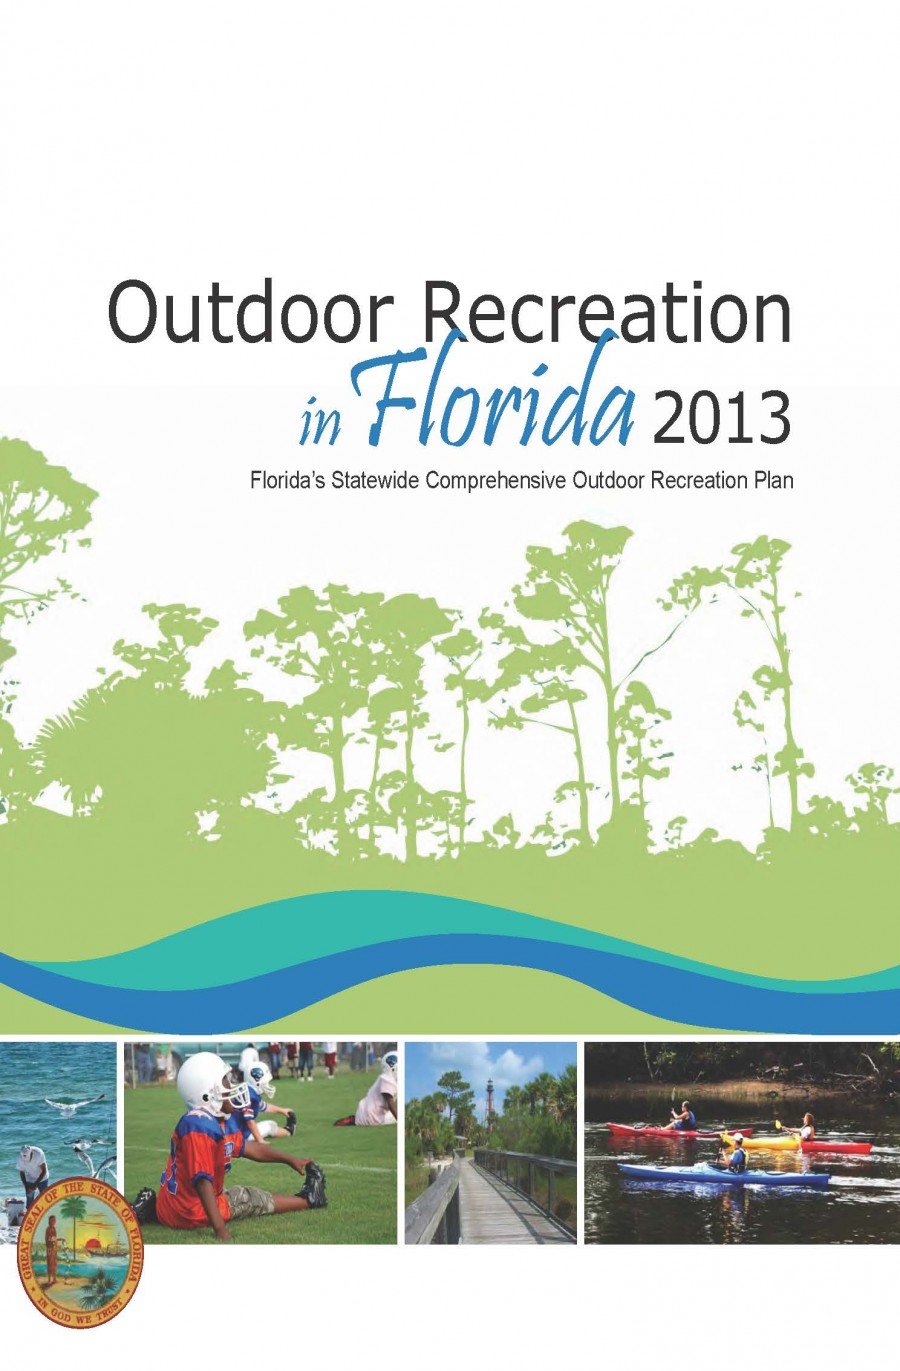 Outdoor Recreation in Florida 2013 report cover